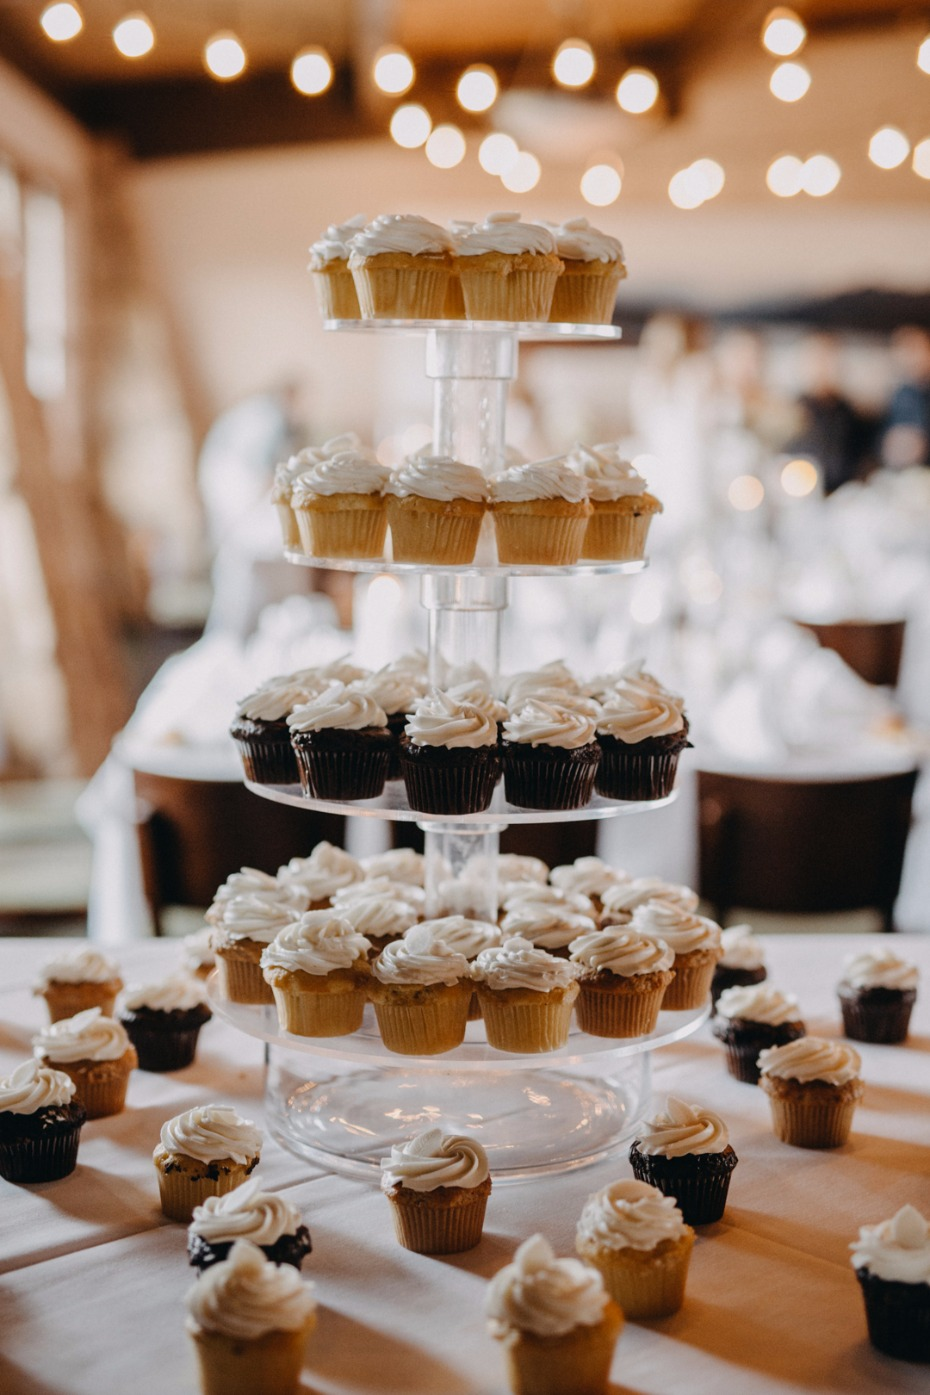 cupcakes instead of a full wedding cake